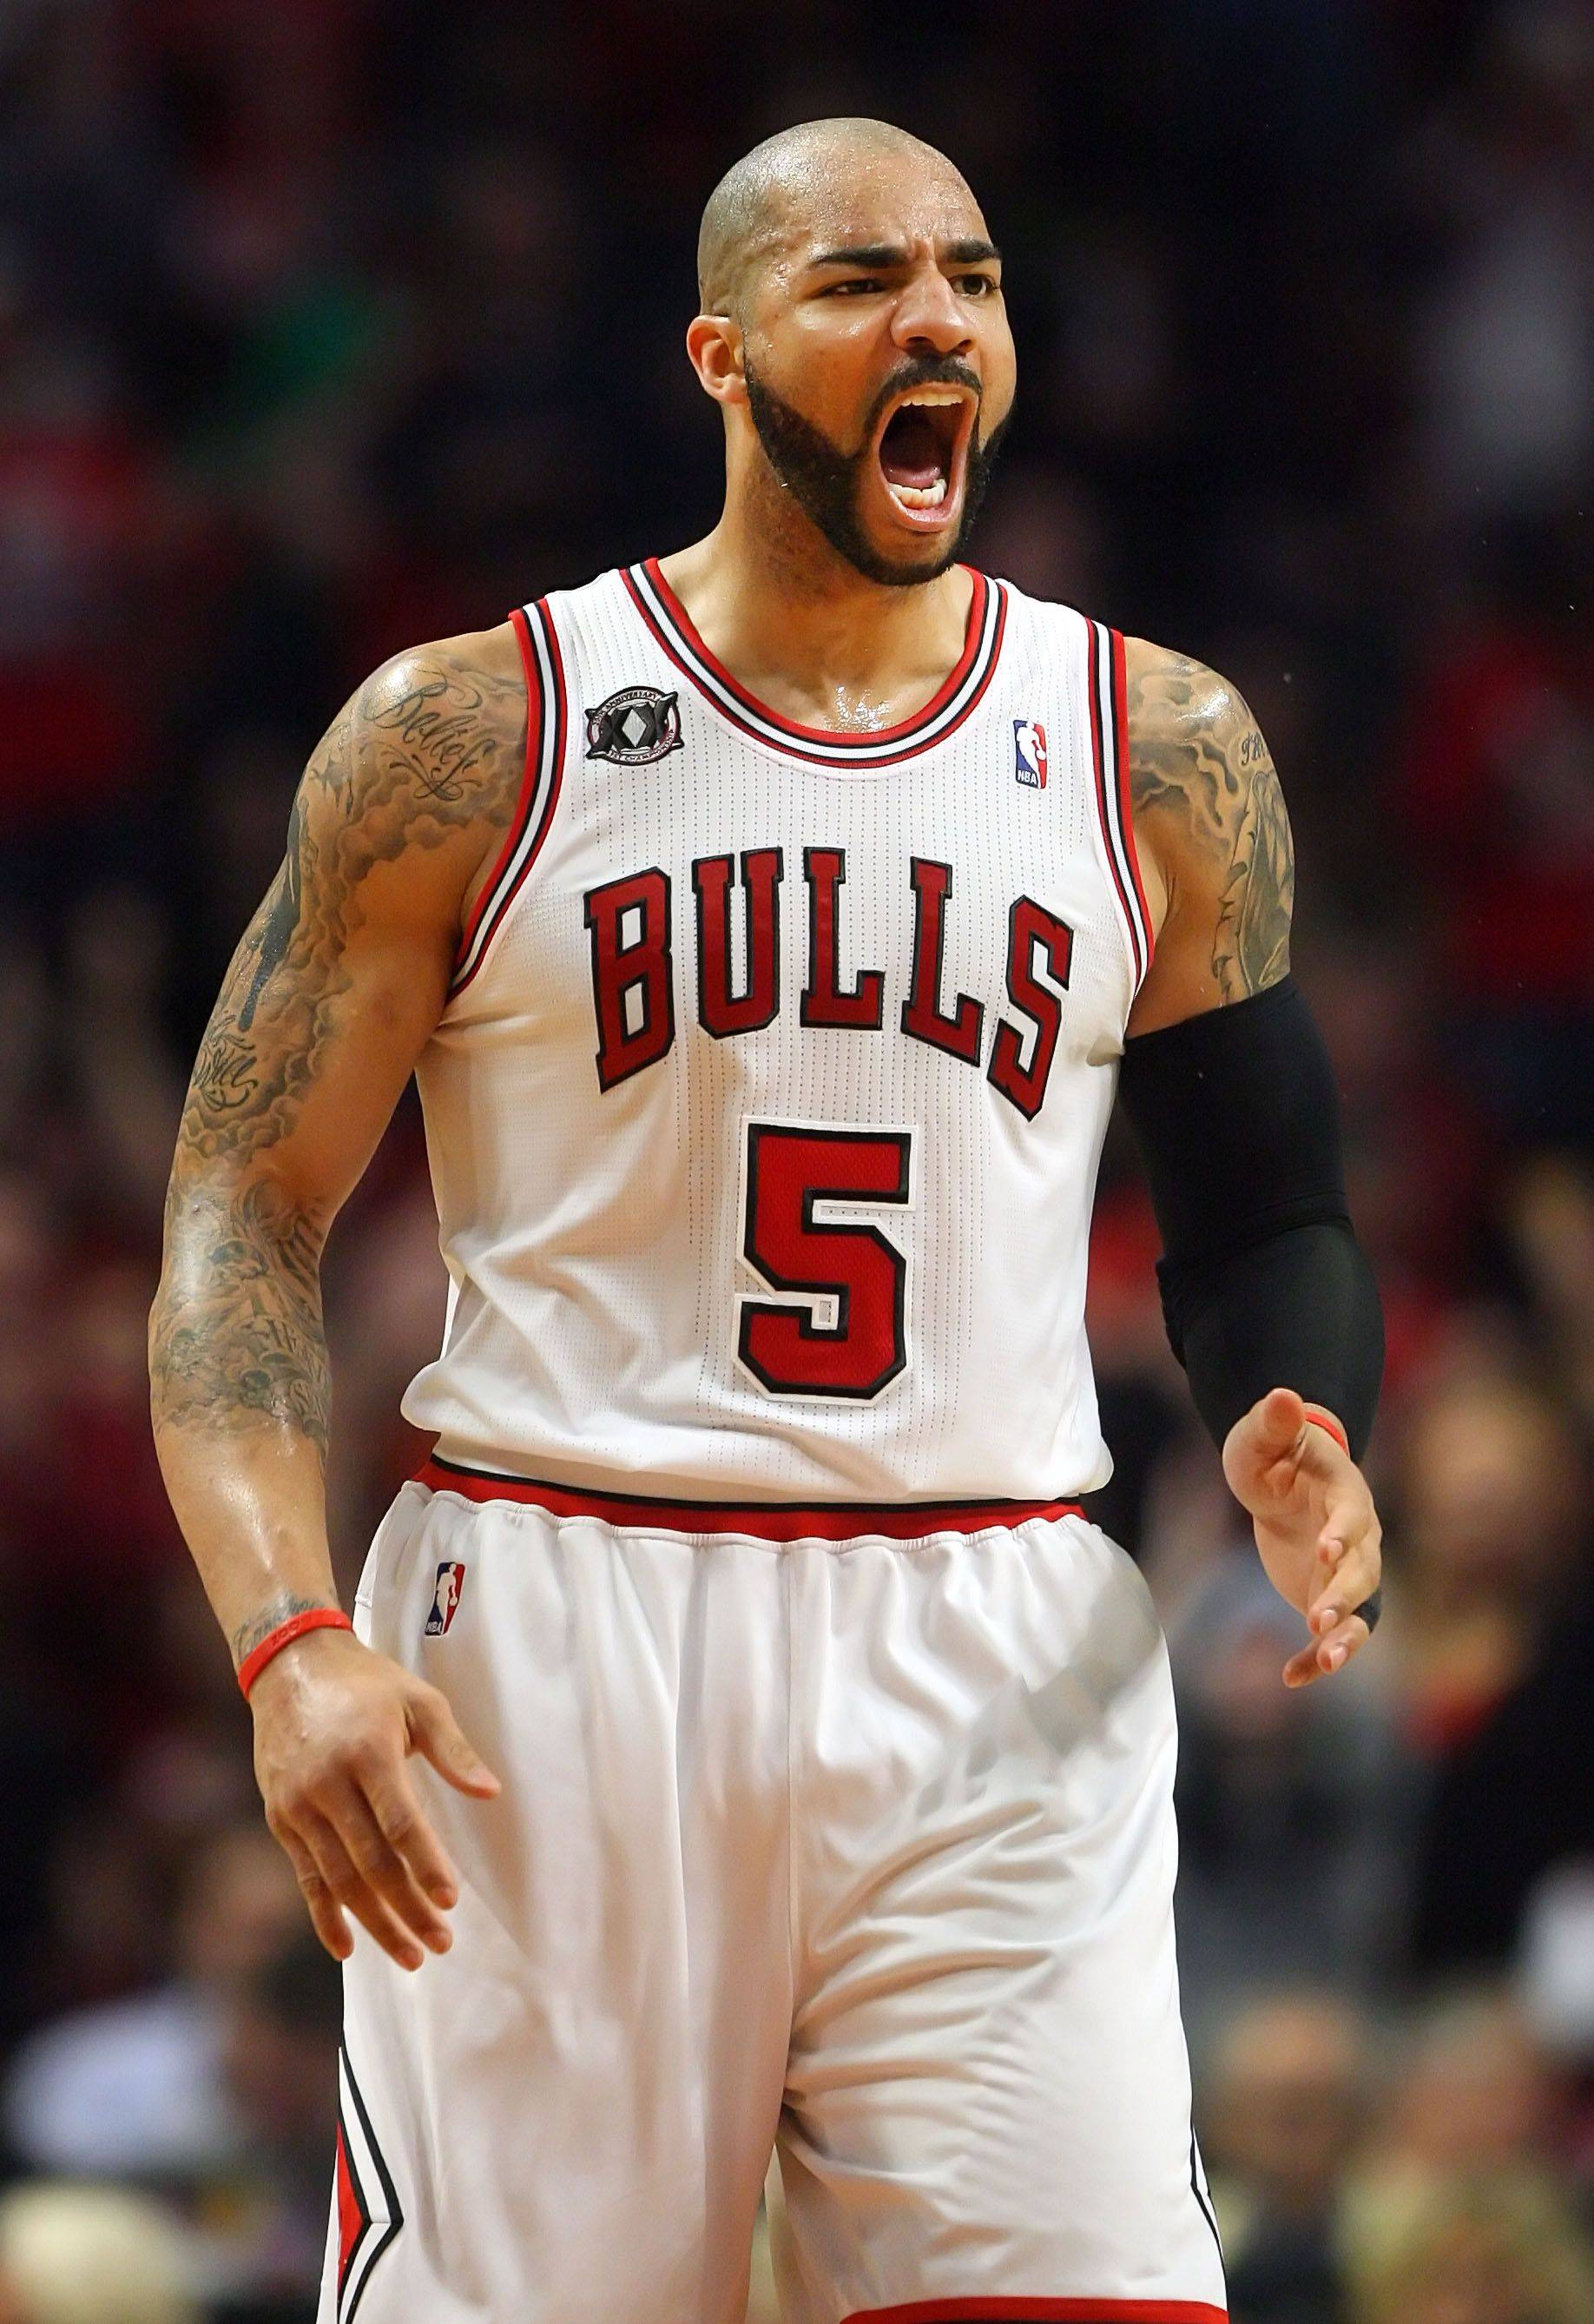 Chicago Bulls power forward Carlos Boozer cheers during game one of the Eastern Conference finals Sunday night at the United Center.